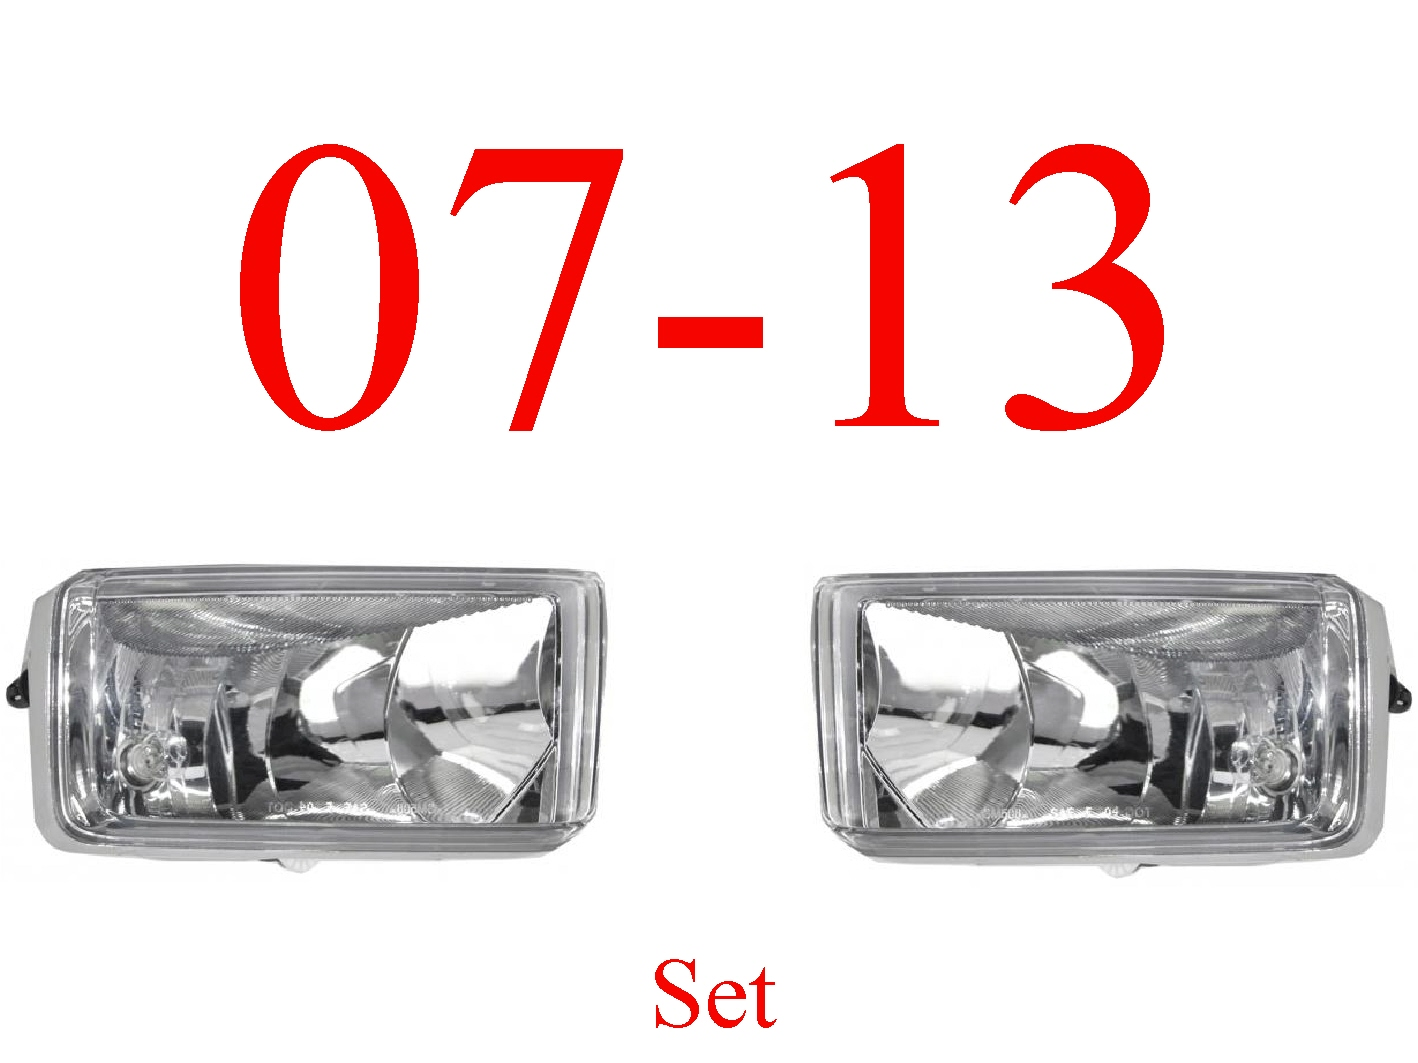 07-13 Chevy Fog Light Set, Assembly